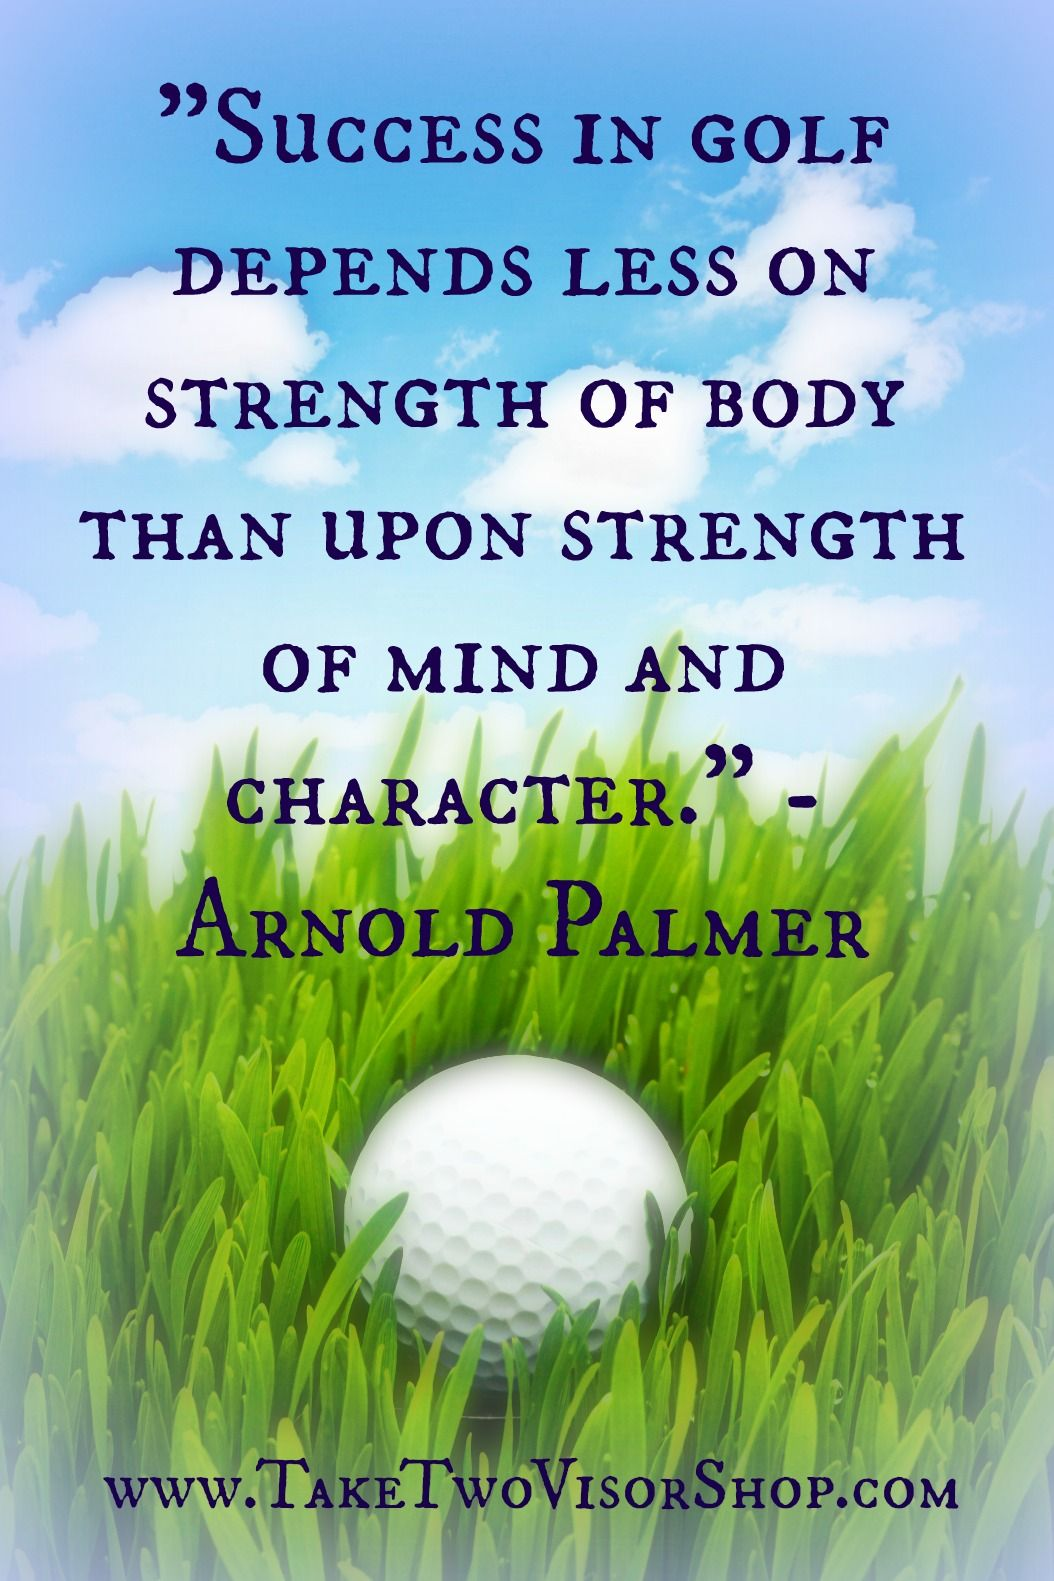 Golf Quotes About Life True Not Only In Golf But In Lifewww.taketwovisorshop Golf